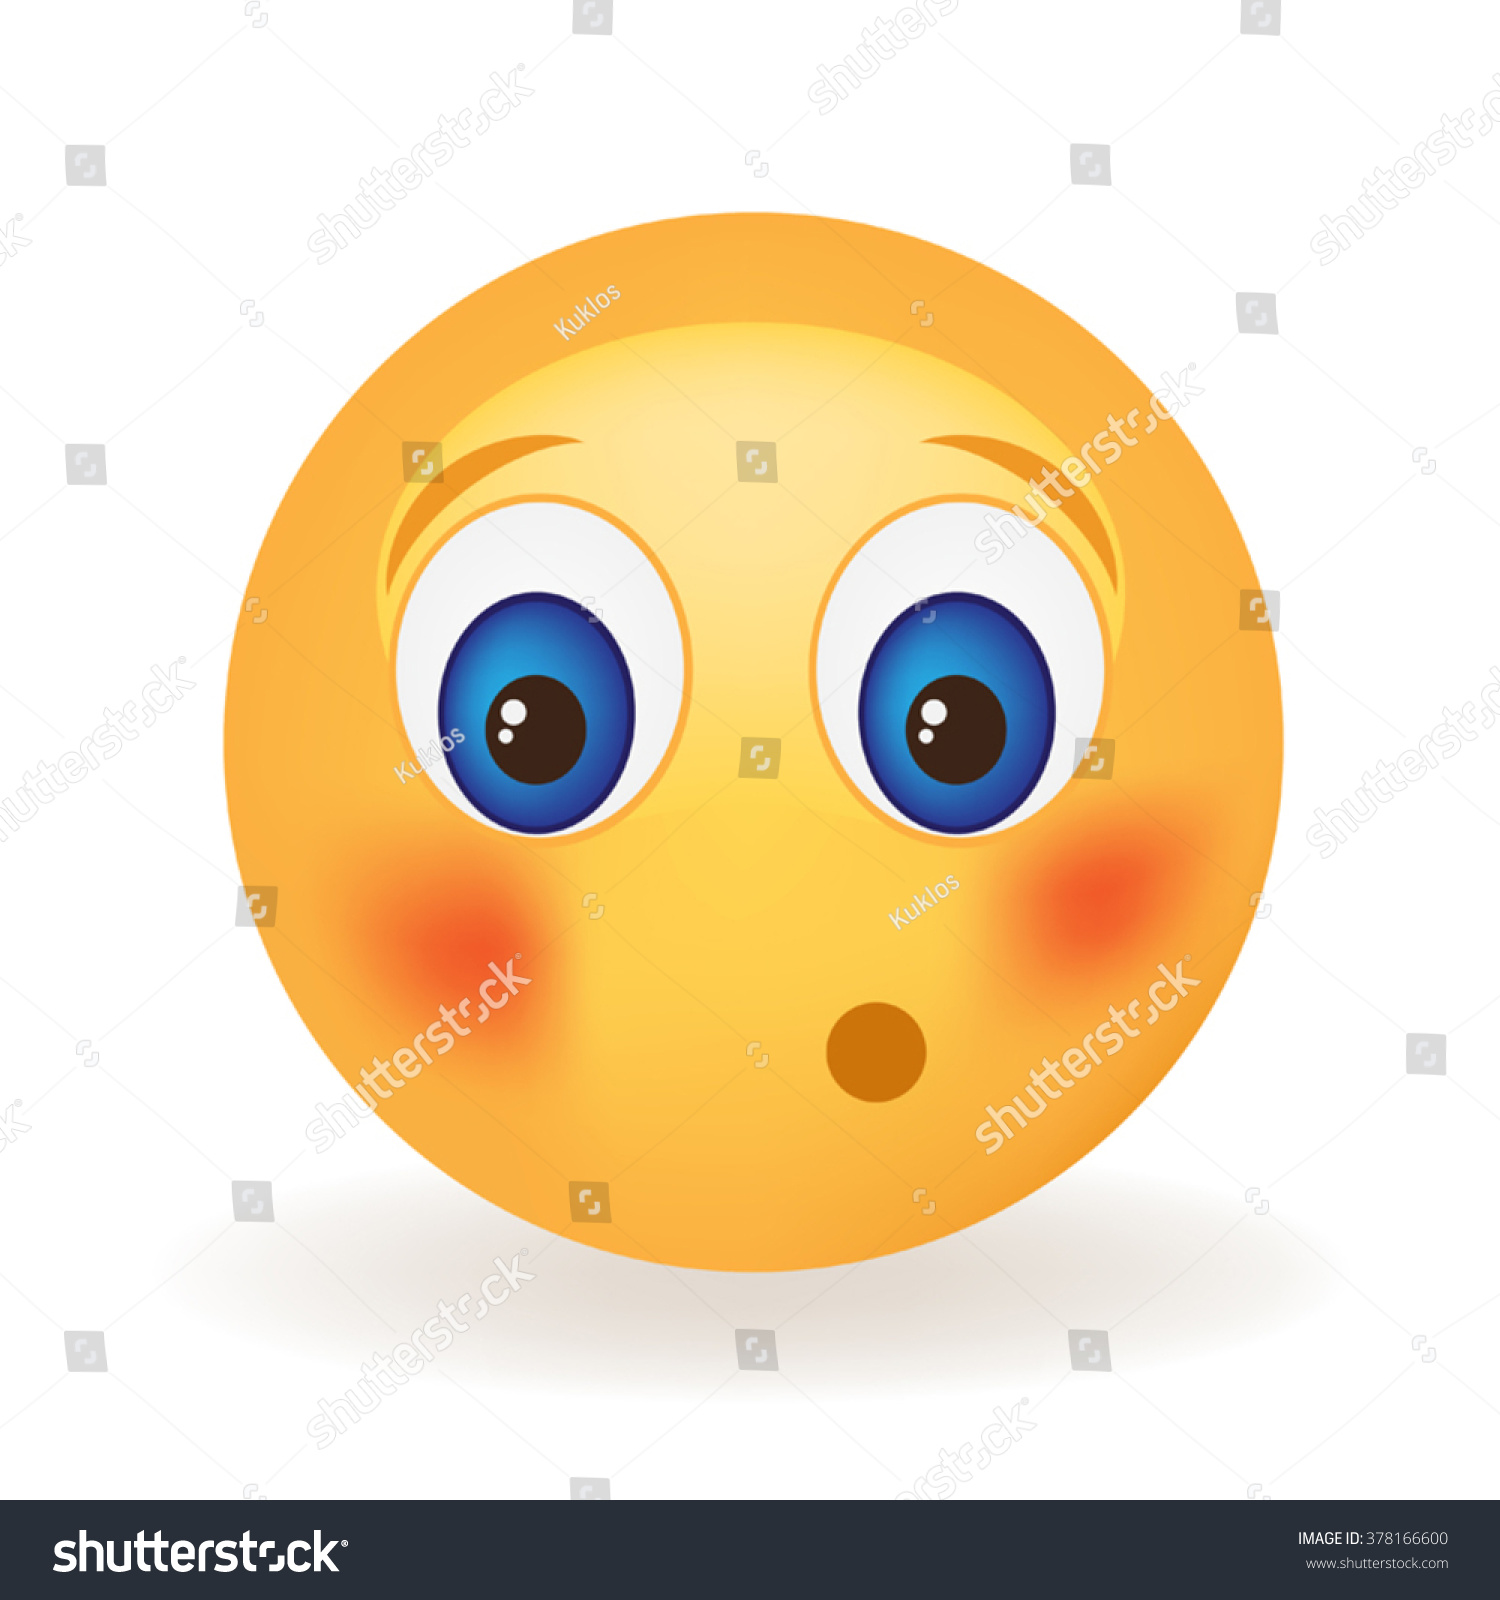 embarrassed smiley face stock vector 378166600 shutterstock rh shutterstock com Frustrated Smiley Face Clip Art Yummy Smiley Face Clip Art